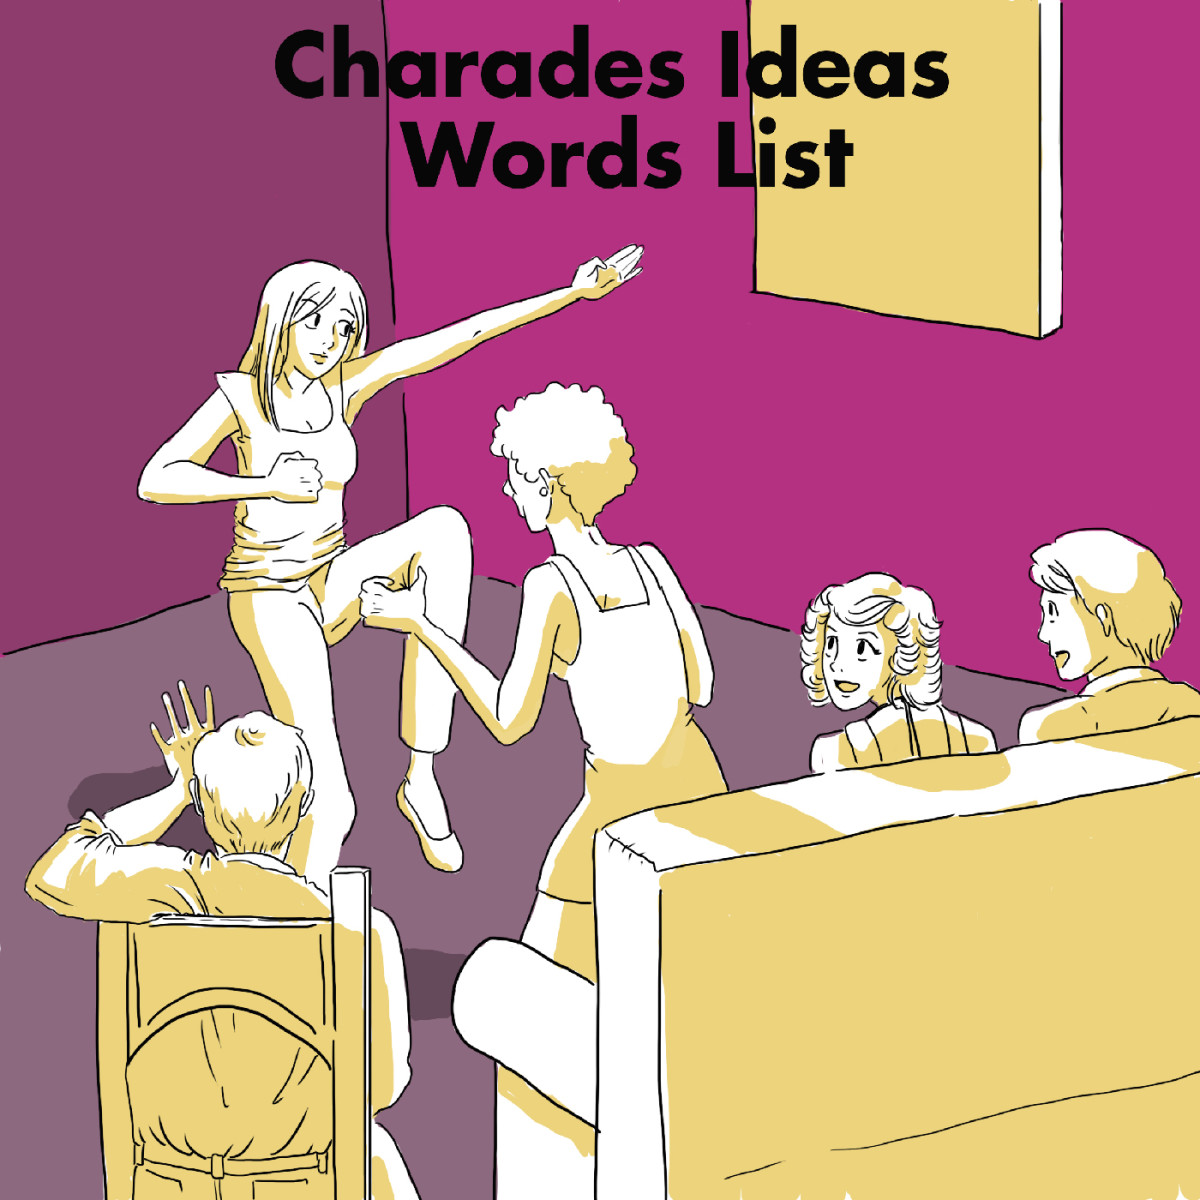 Charades: Topic Ideas, Word Lists, and How to Play